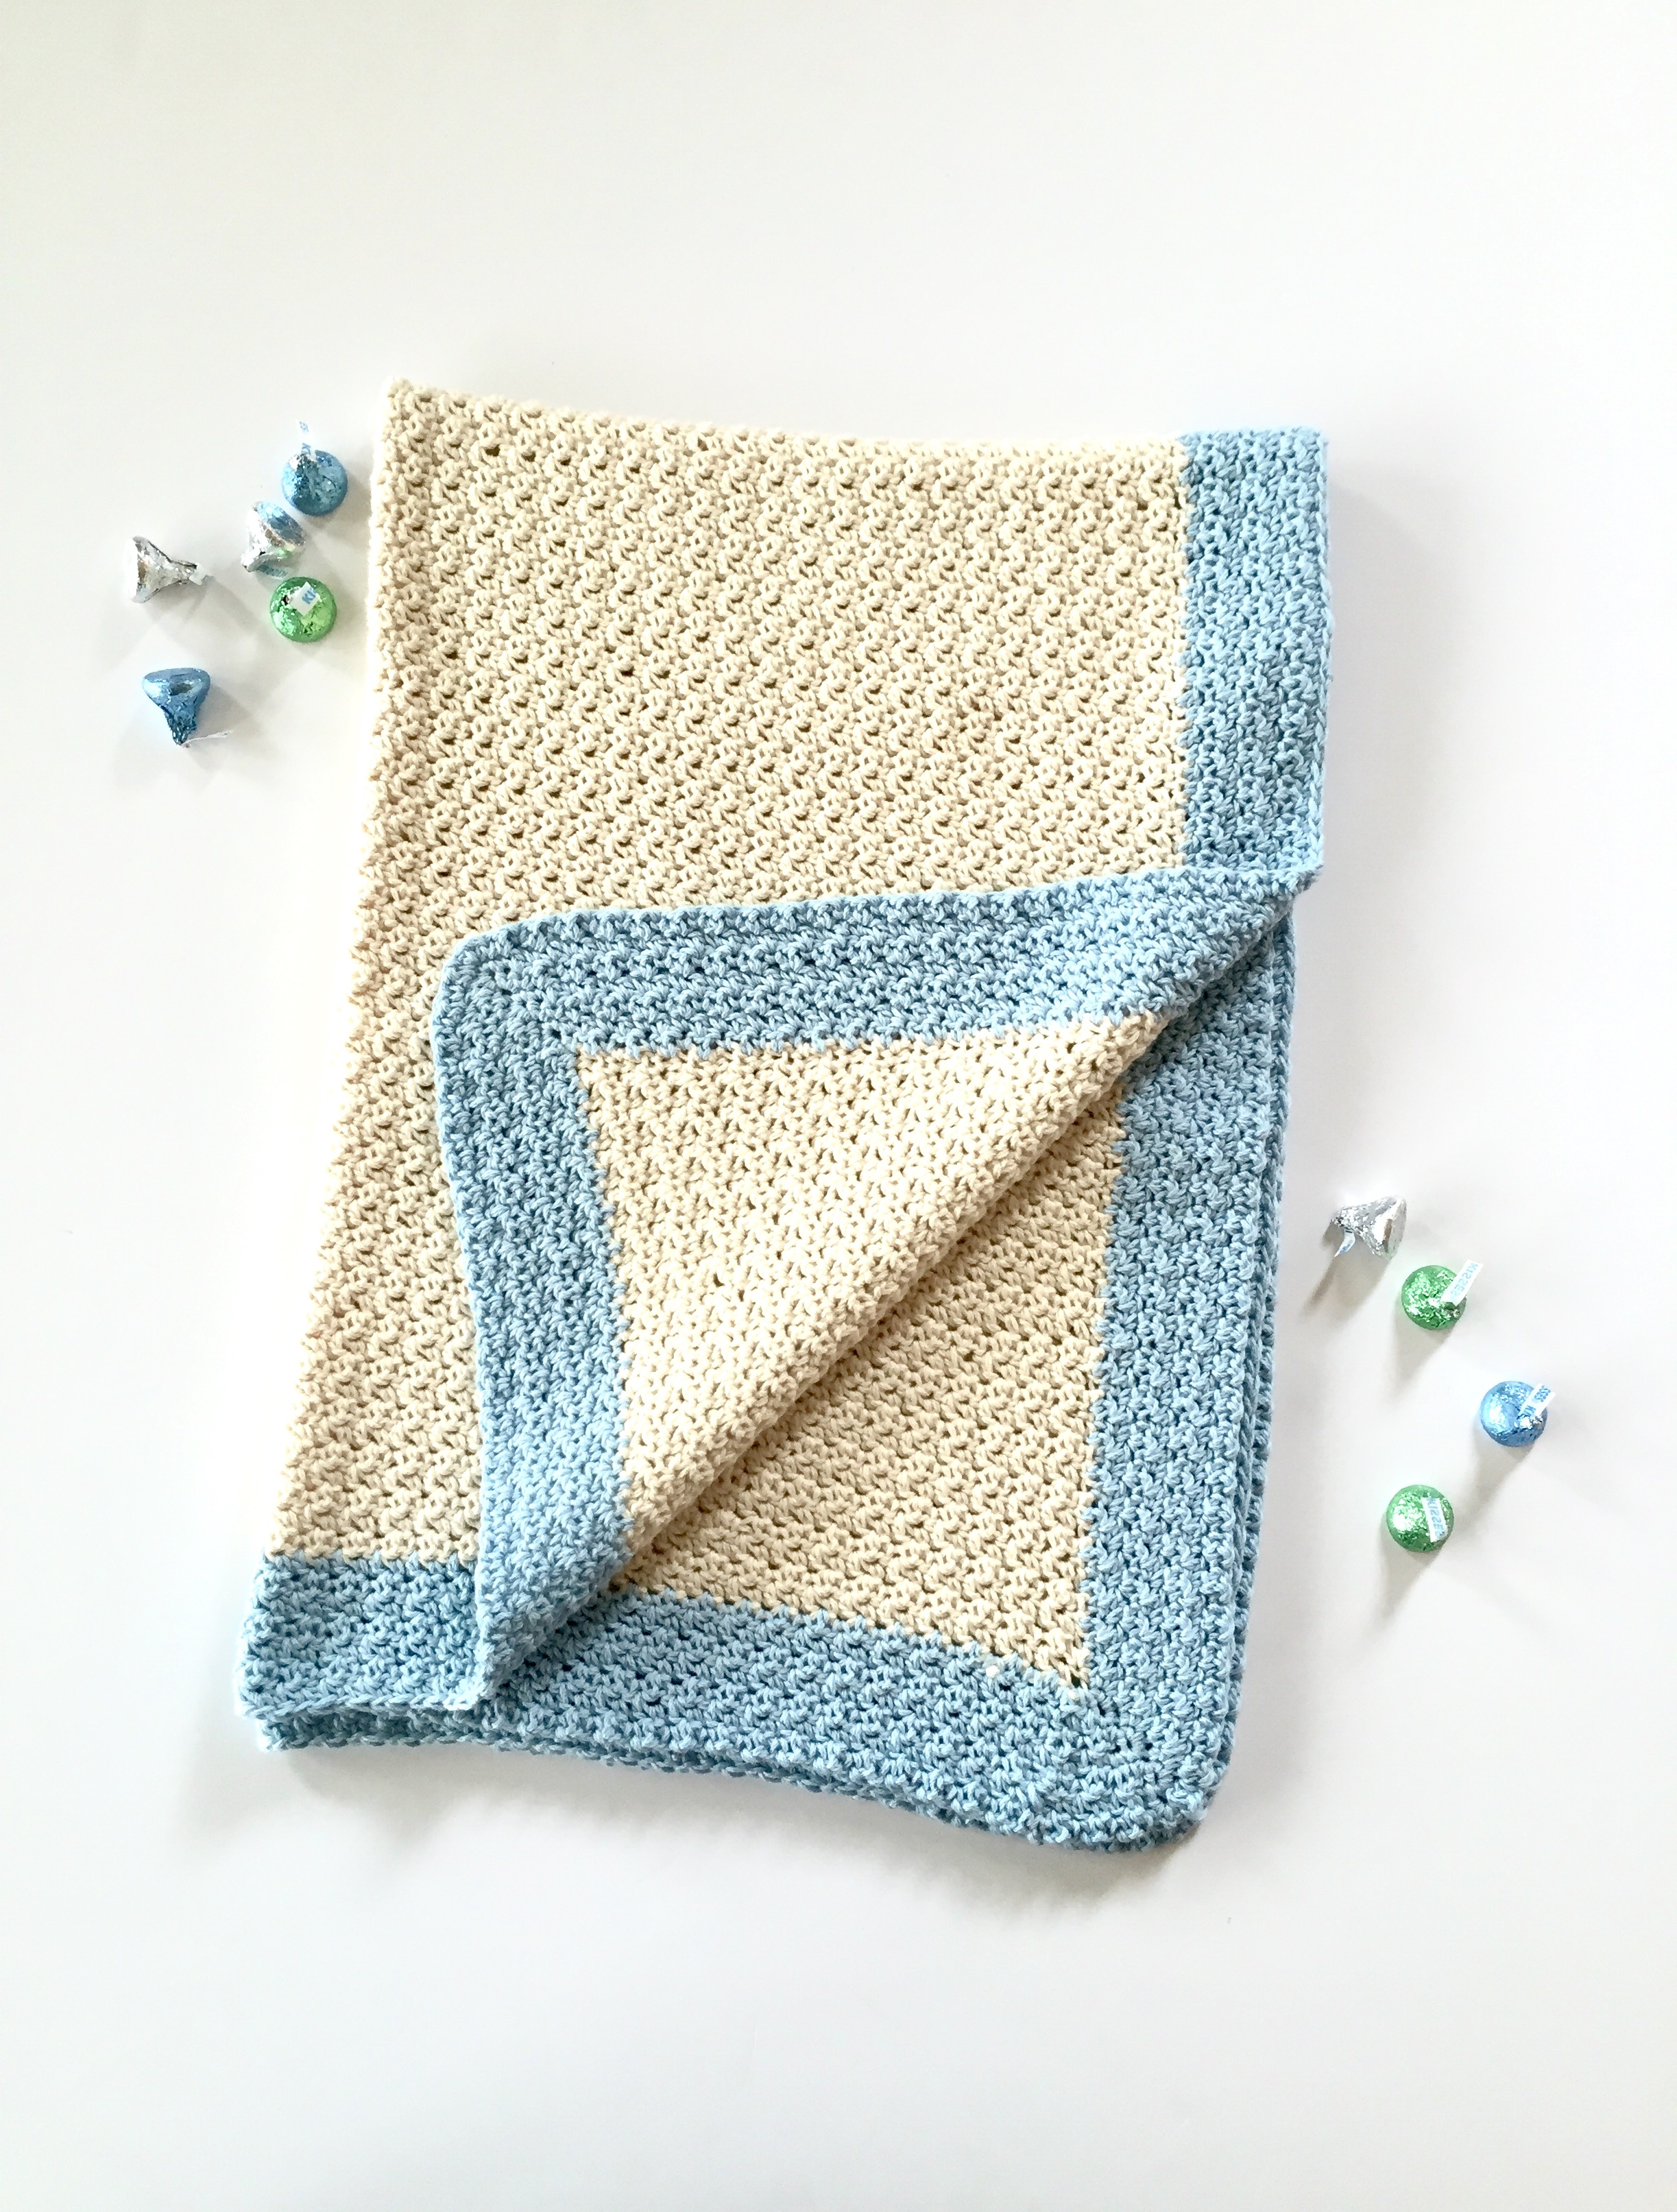 Crochet Patterns Kits : ... crochet pattern kit 73 00 the kit includes the baby blanket crochet